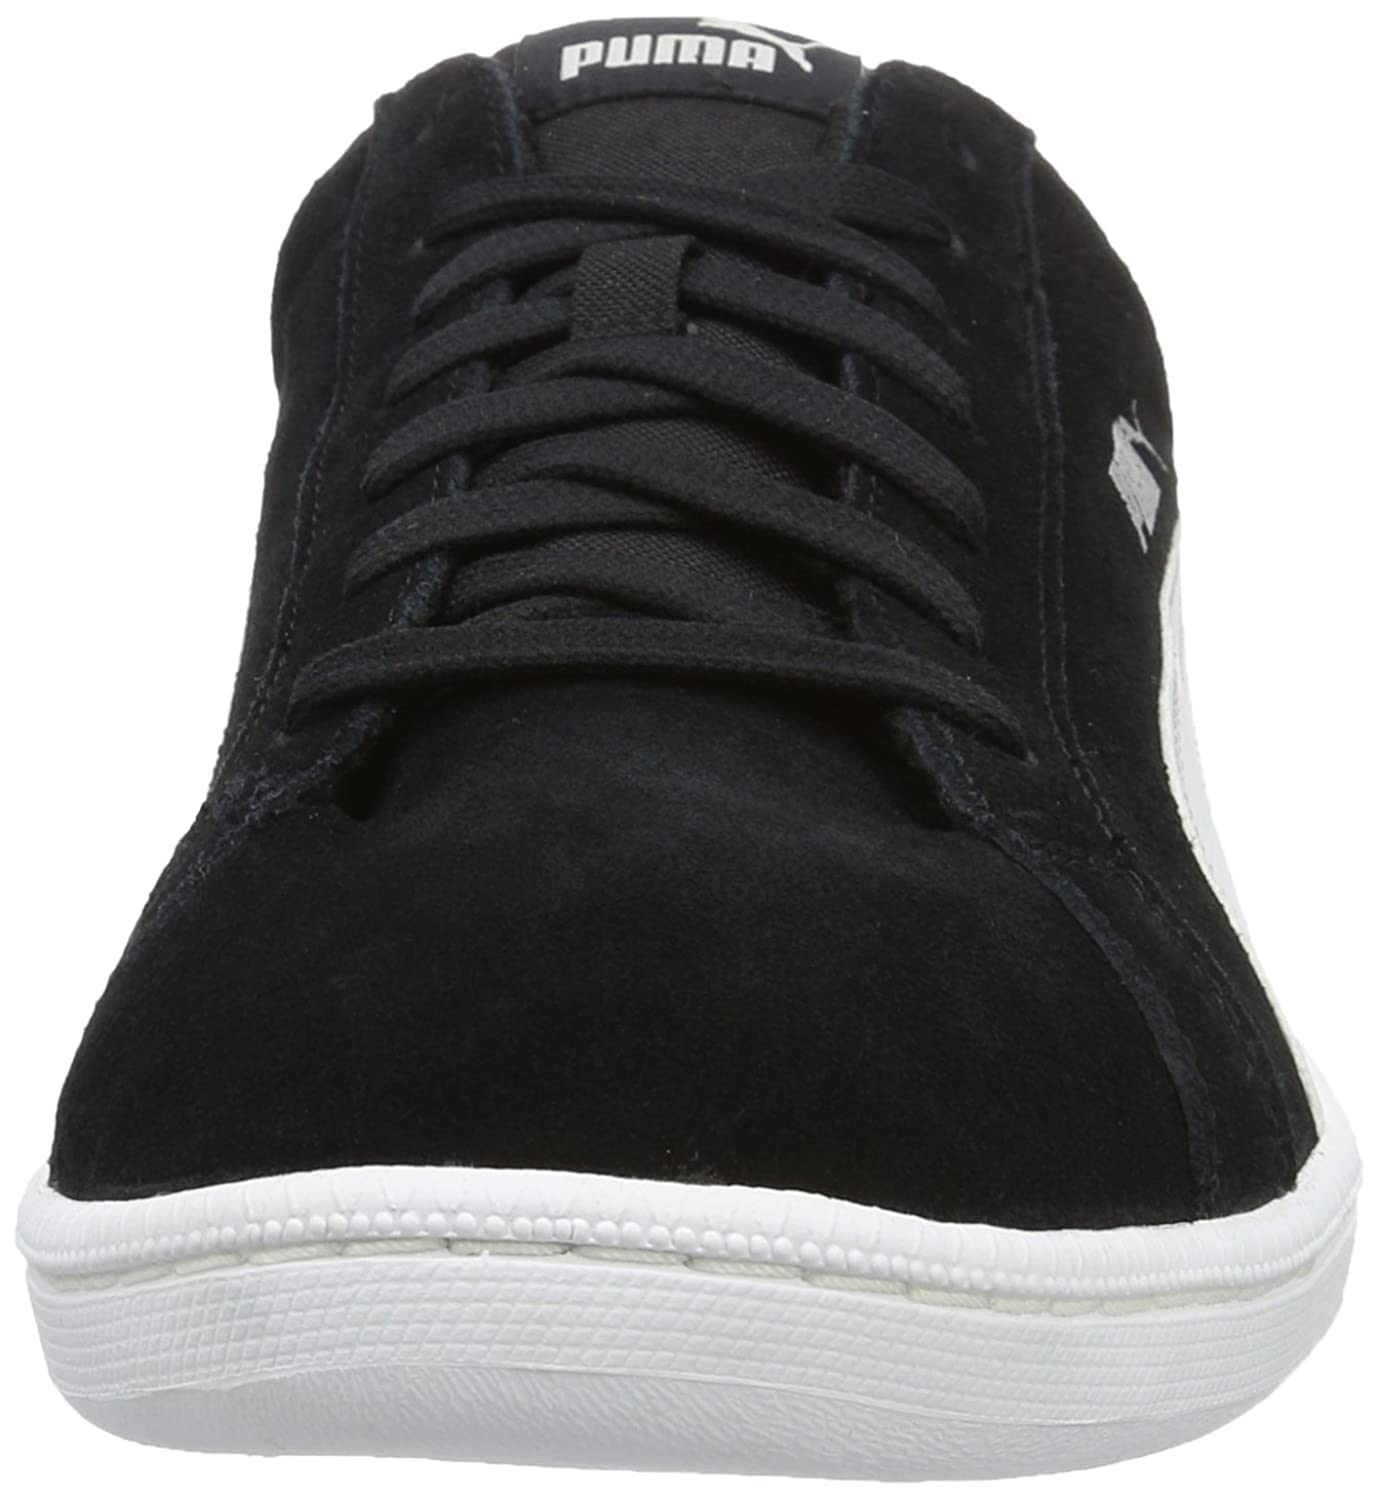 Puma Smash SD Suede Leather Sneaker Men Trainers Black 361730 01: Puma:  Amazon.es: Zapatos y complementos